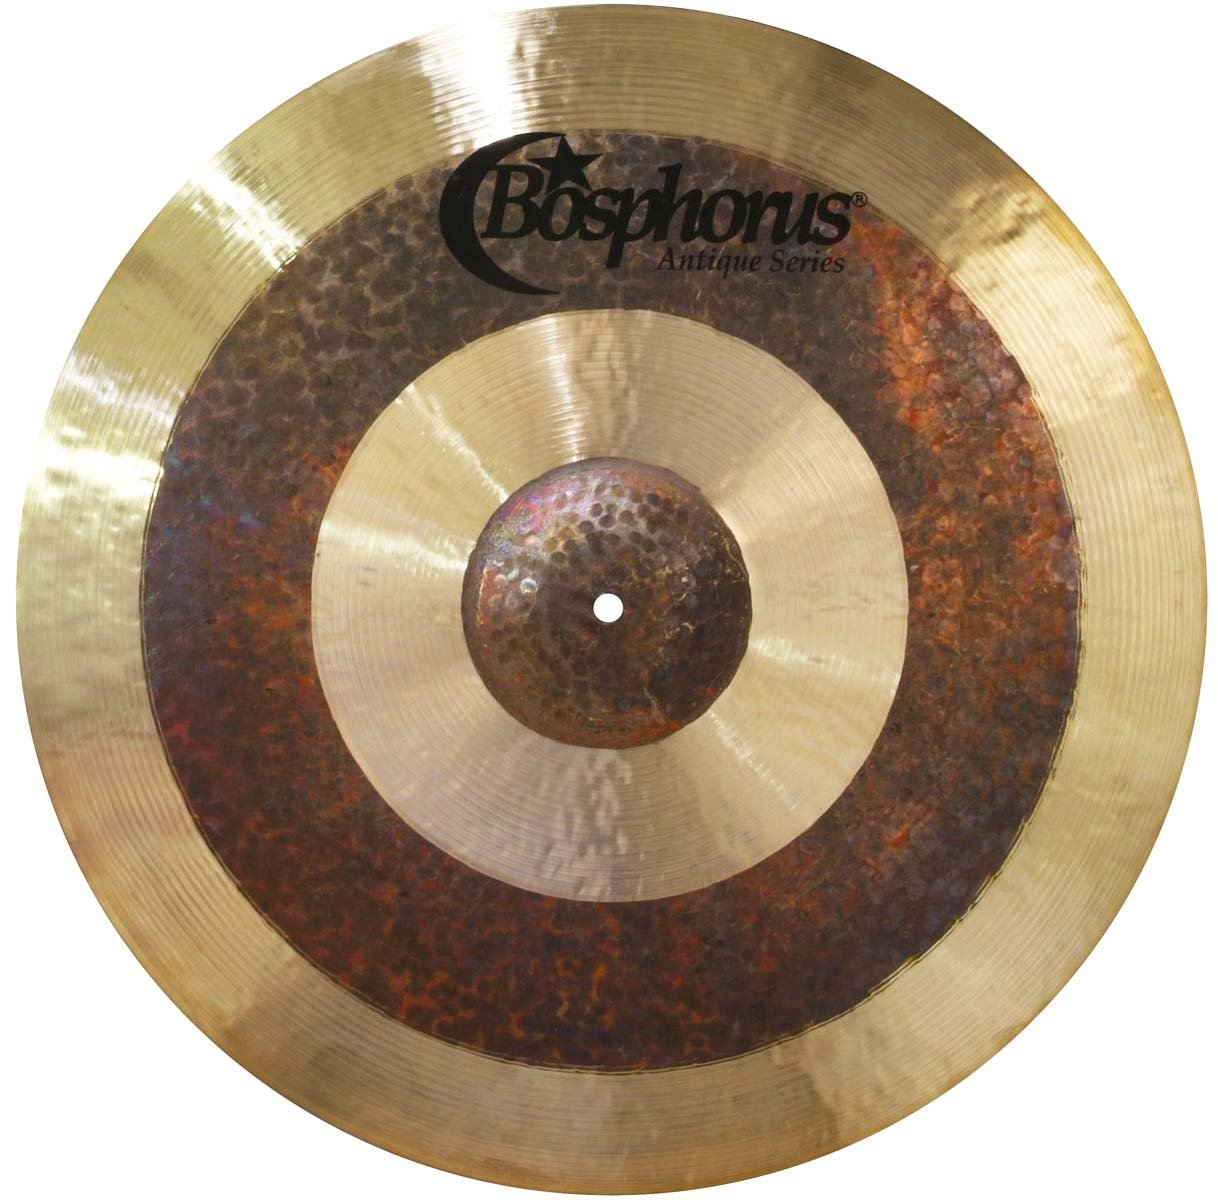 Bosphorus Cymbals A20RM 20-Inch Antique Series Ride Cymbal by Bosphorus Cymbals